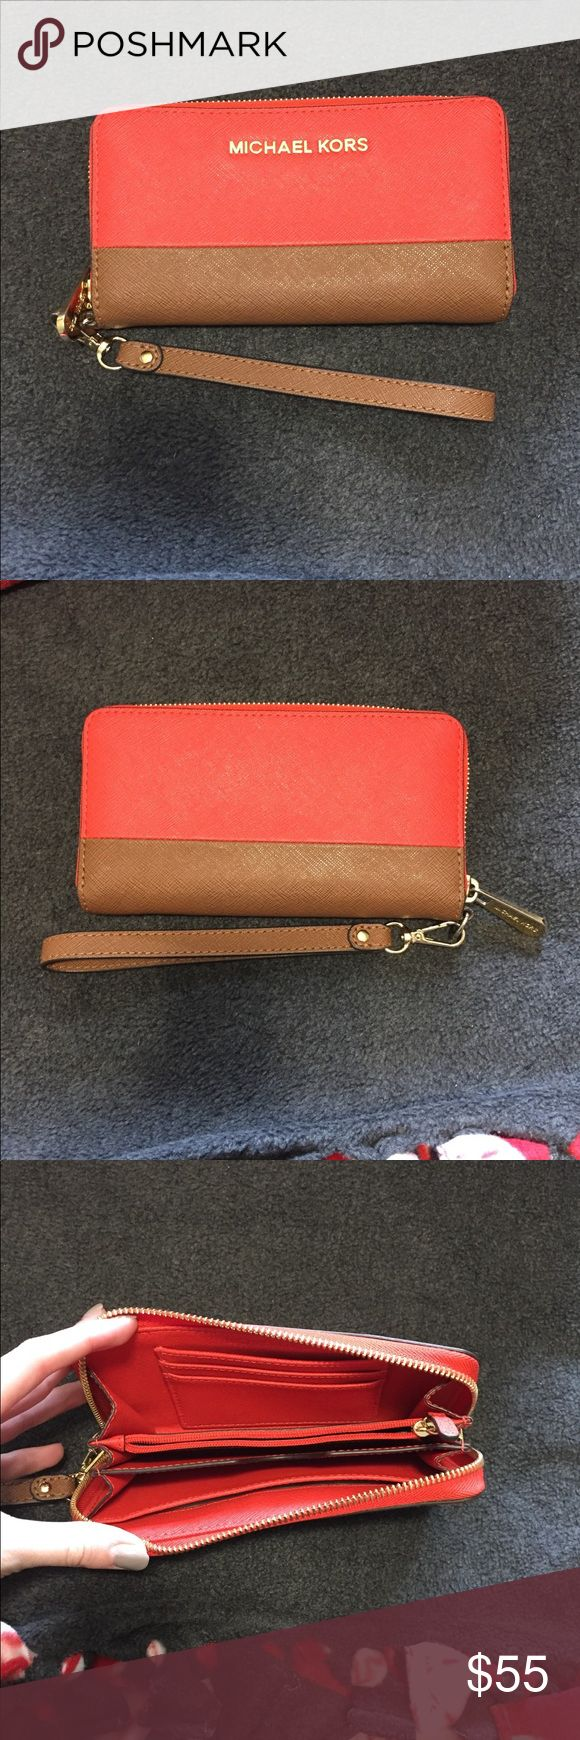 Michael Kors Jet Set Wallet EUC! Holds an iPhone 5/5s, but may hold a 6 with a thin case on! No signs of wear. Great for college students! Michael Kors Bags Clutches & Wristlets